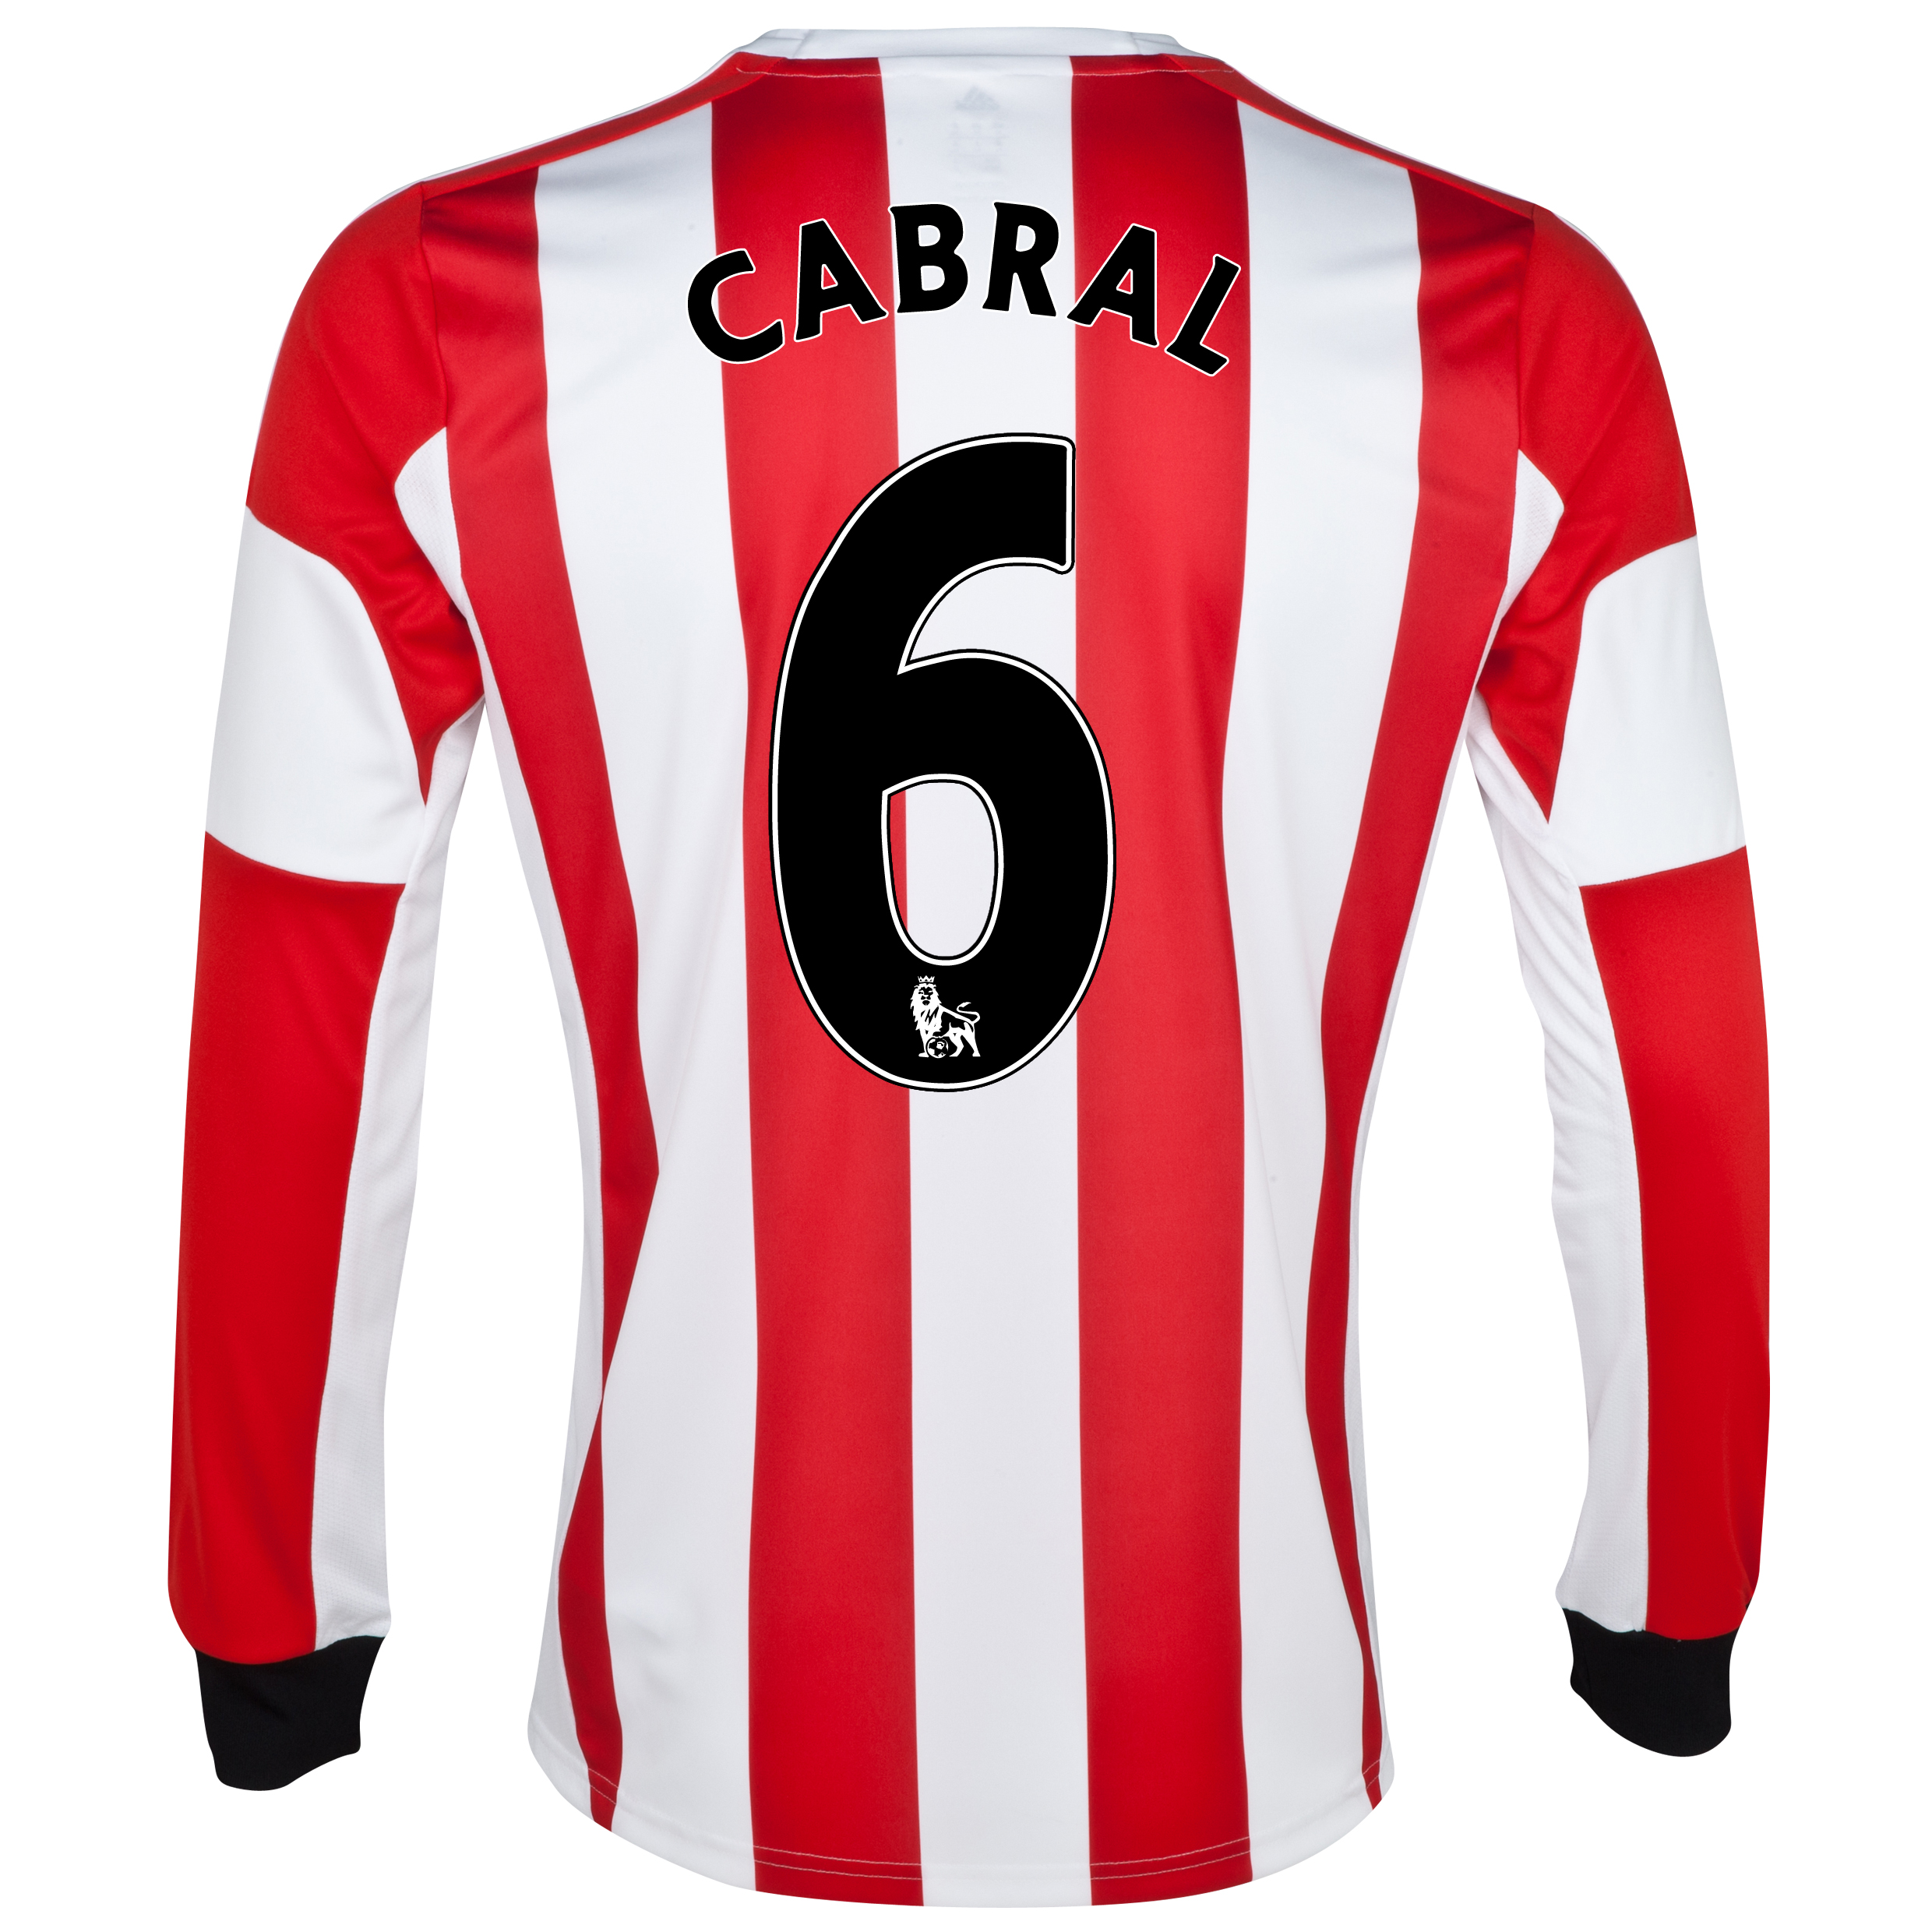 Sunderland Home Shirt 2013/14 - Long Sleeved with Cabral 6 printing